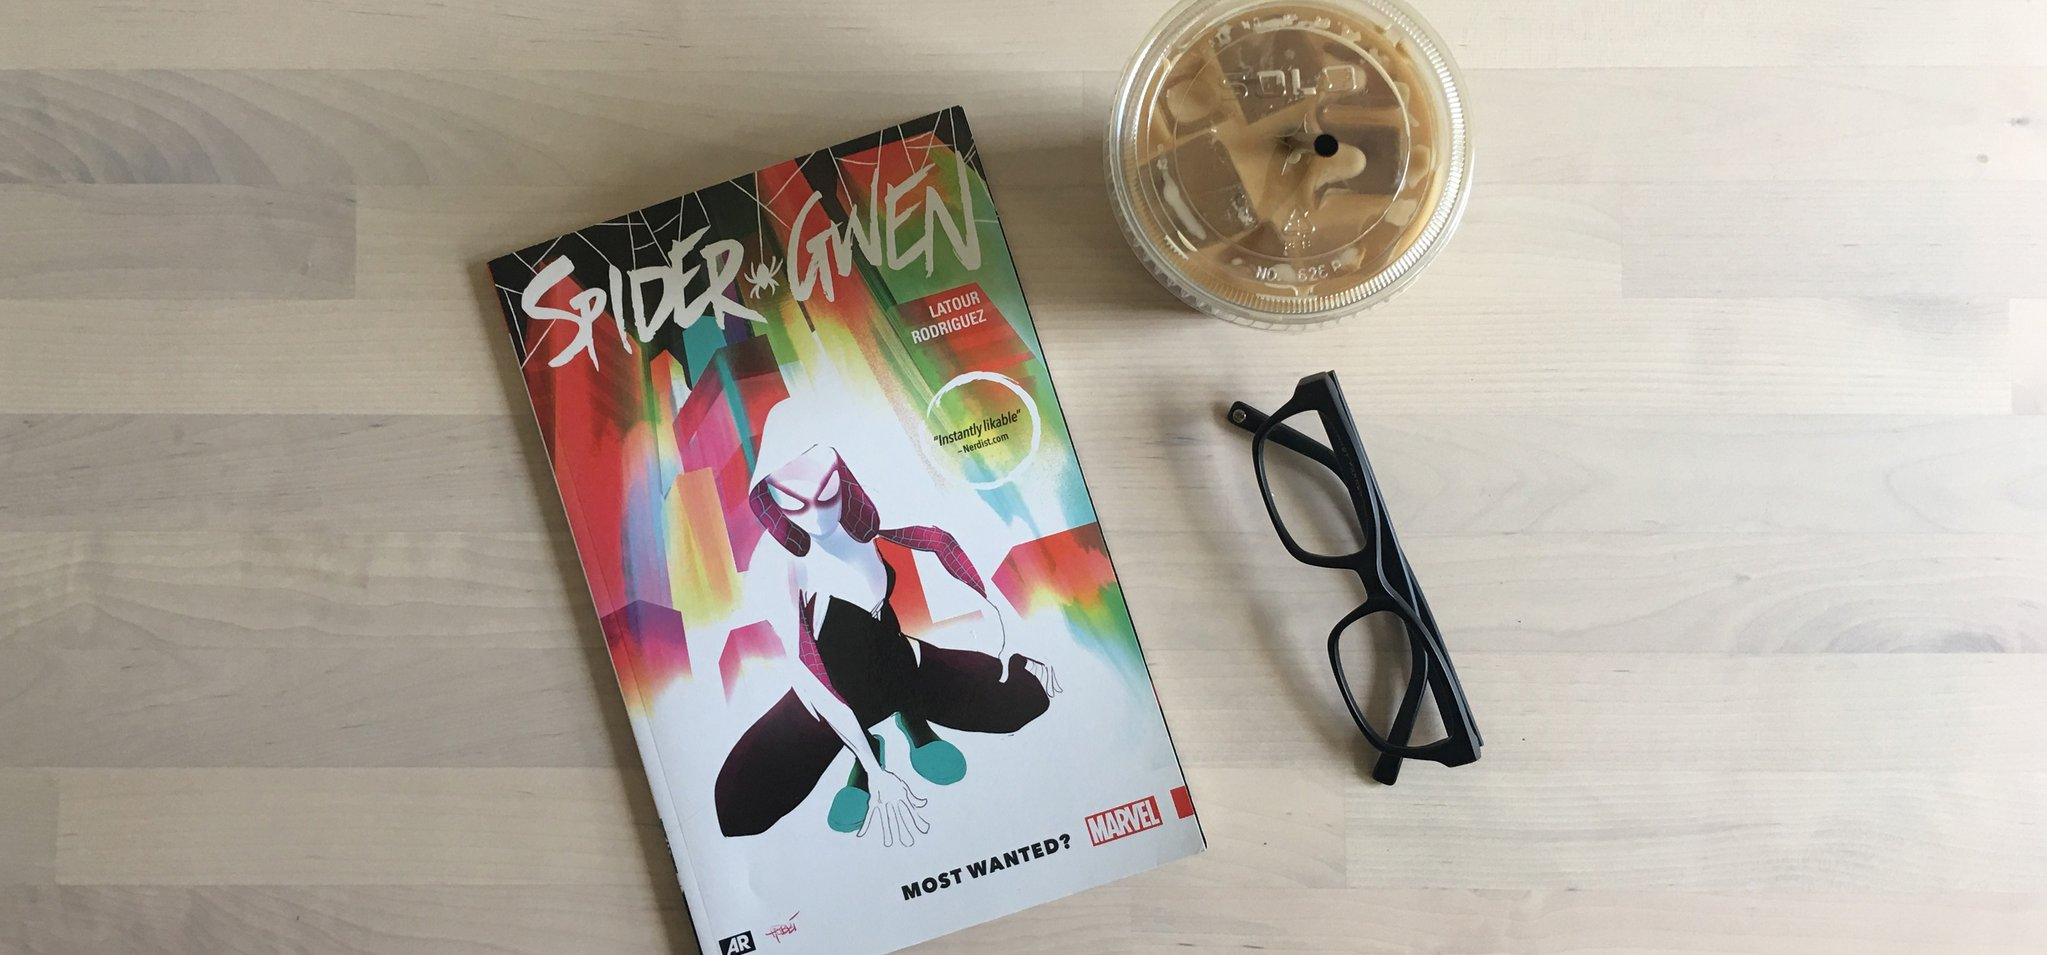 Coffee Break: Spider Gwen Most Wanted